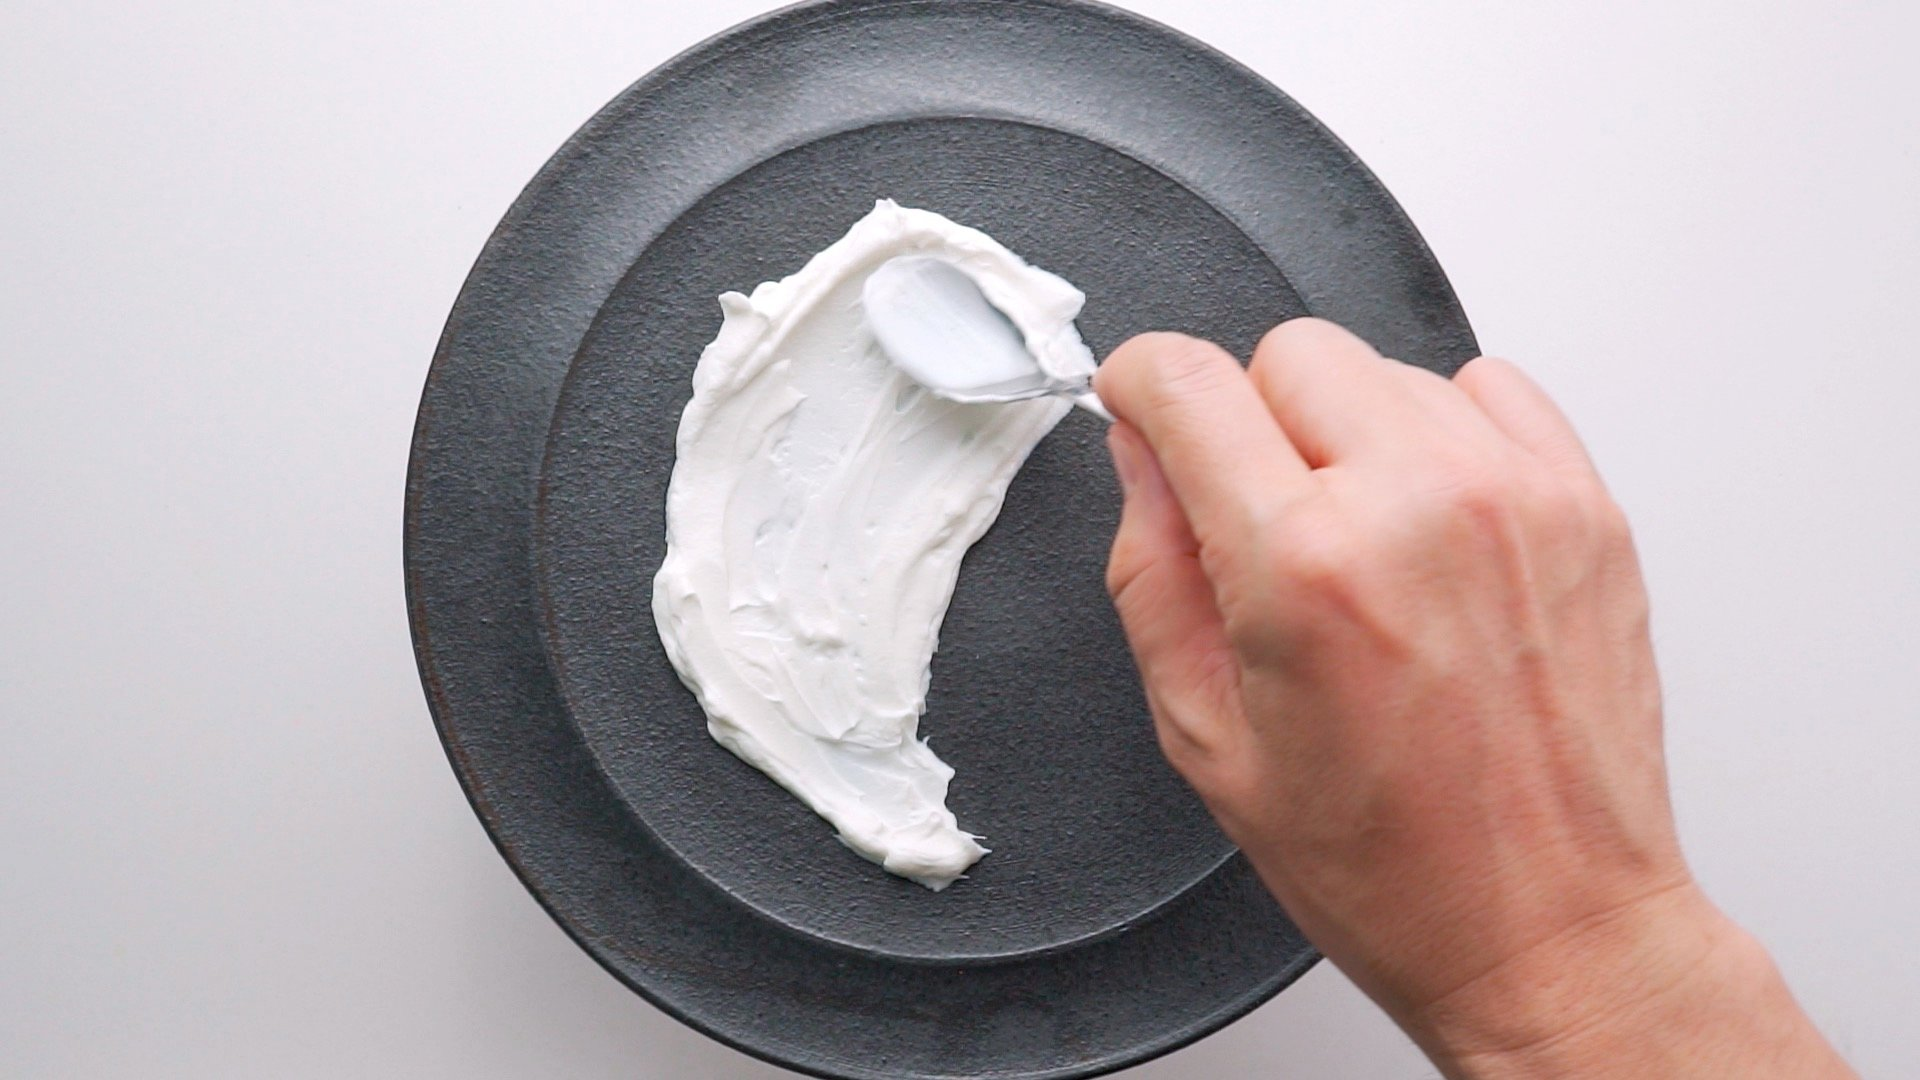 Spreading labneh on a plate.